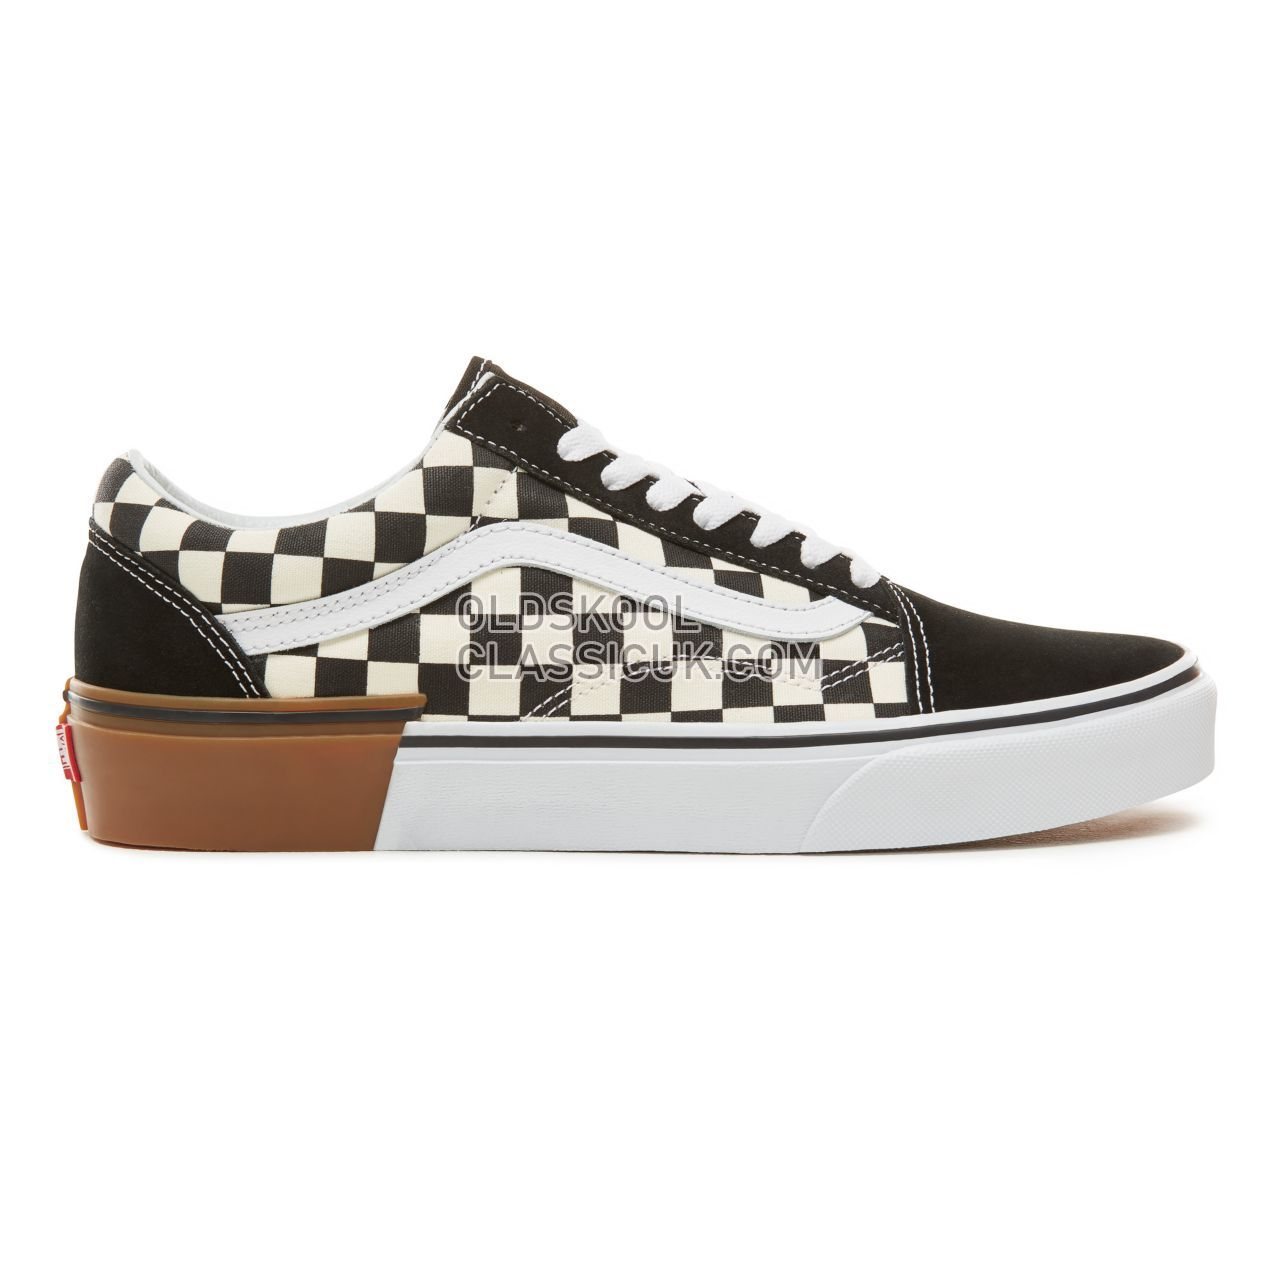 Vans Suede Gum Block Old Skool Sneakers Mens Womens Unisex (Gum Block) Checkerboard VA38G1U58 Shoes